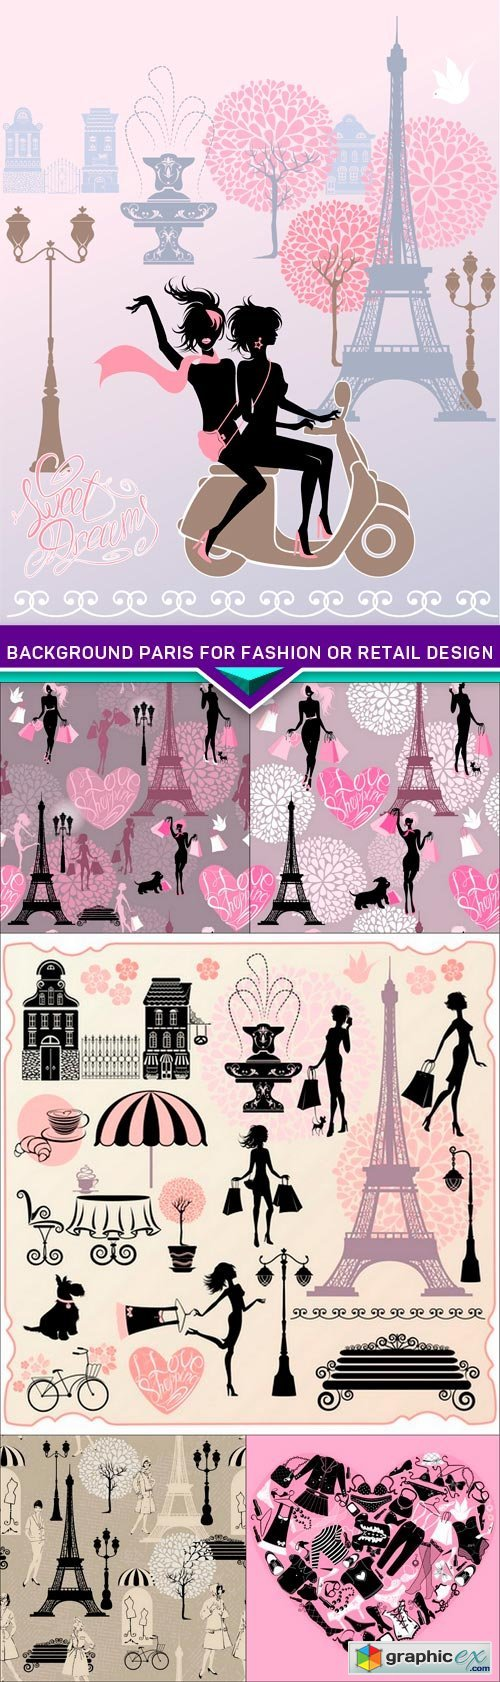 Background Paris for fashion or retail design 6X EPS